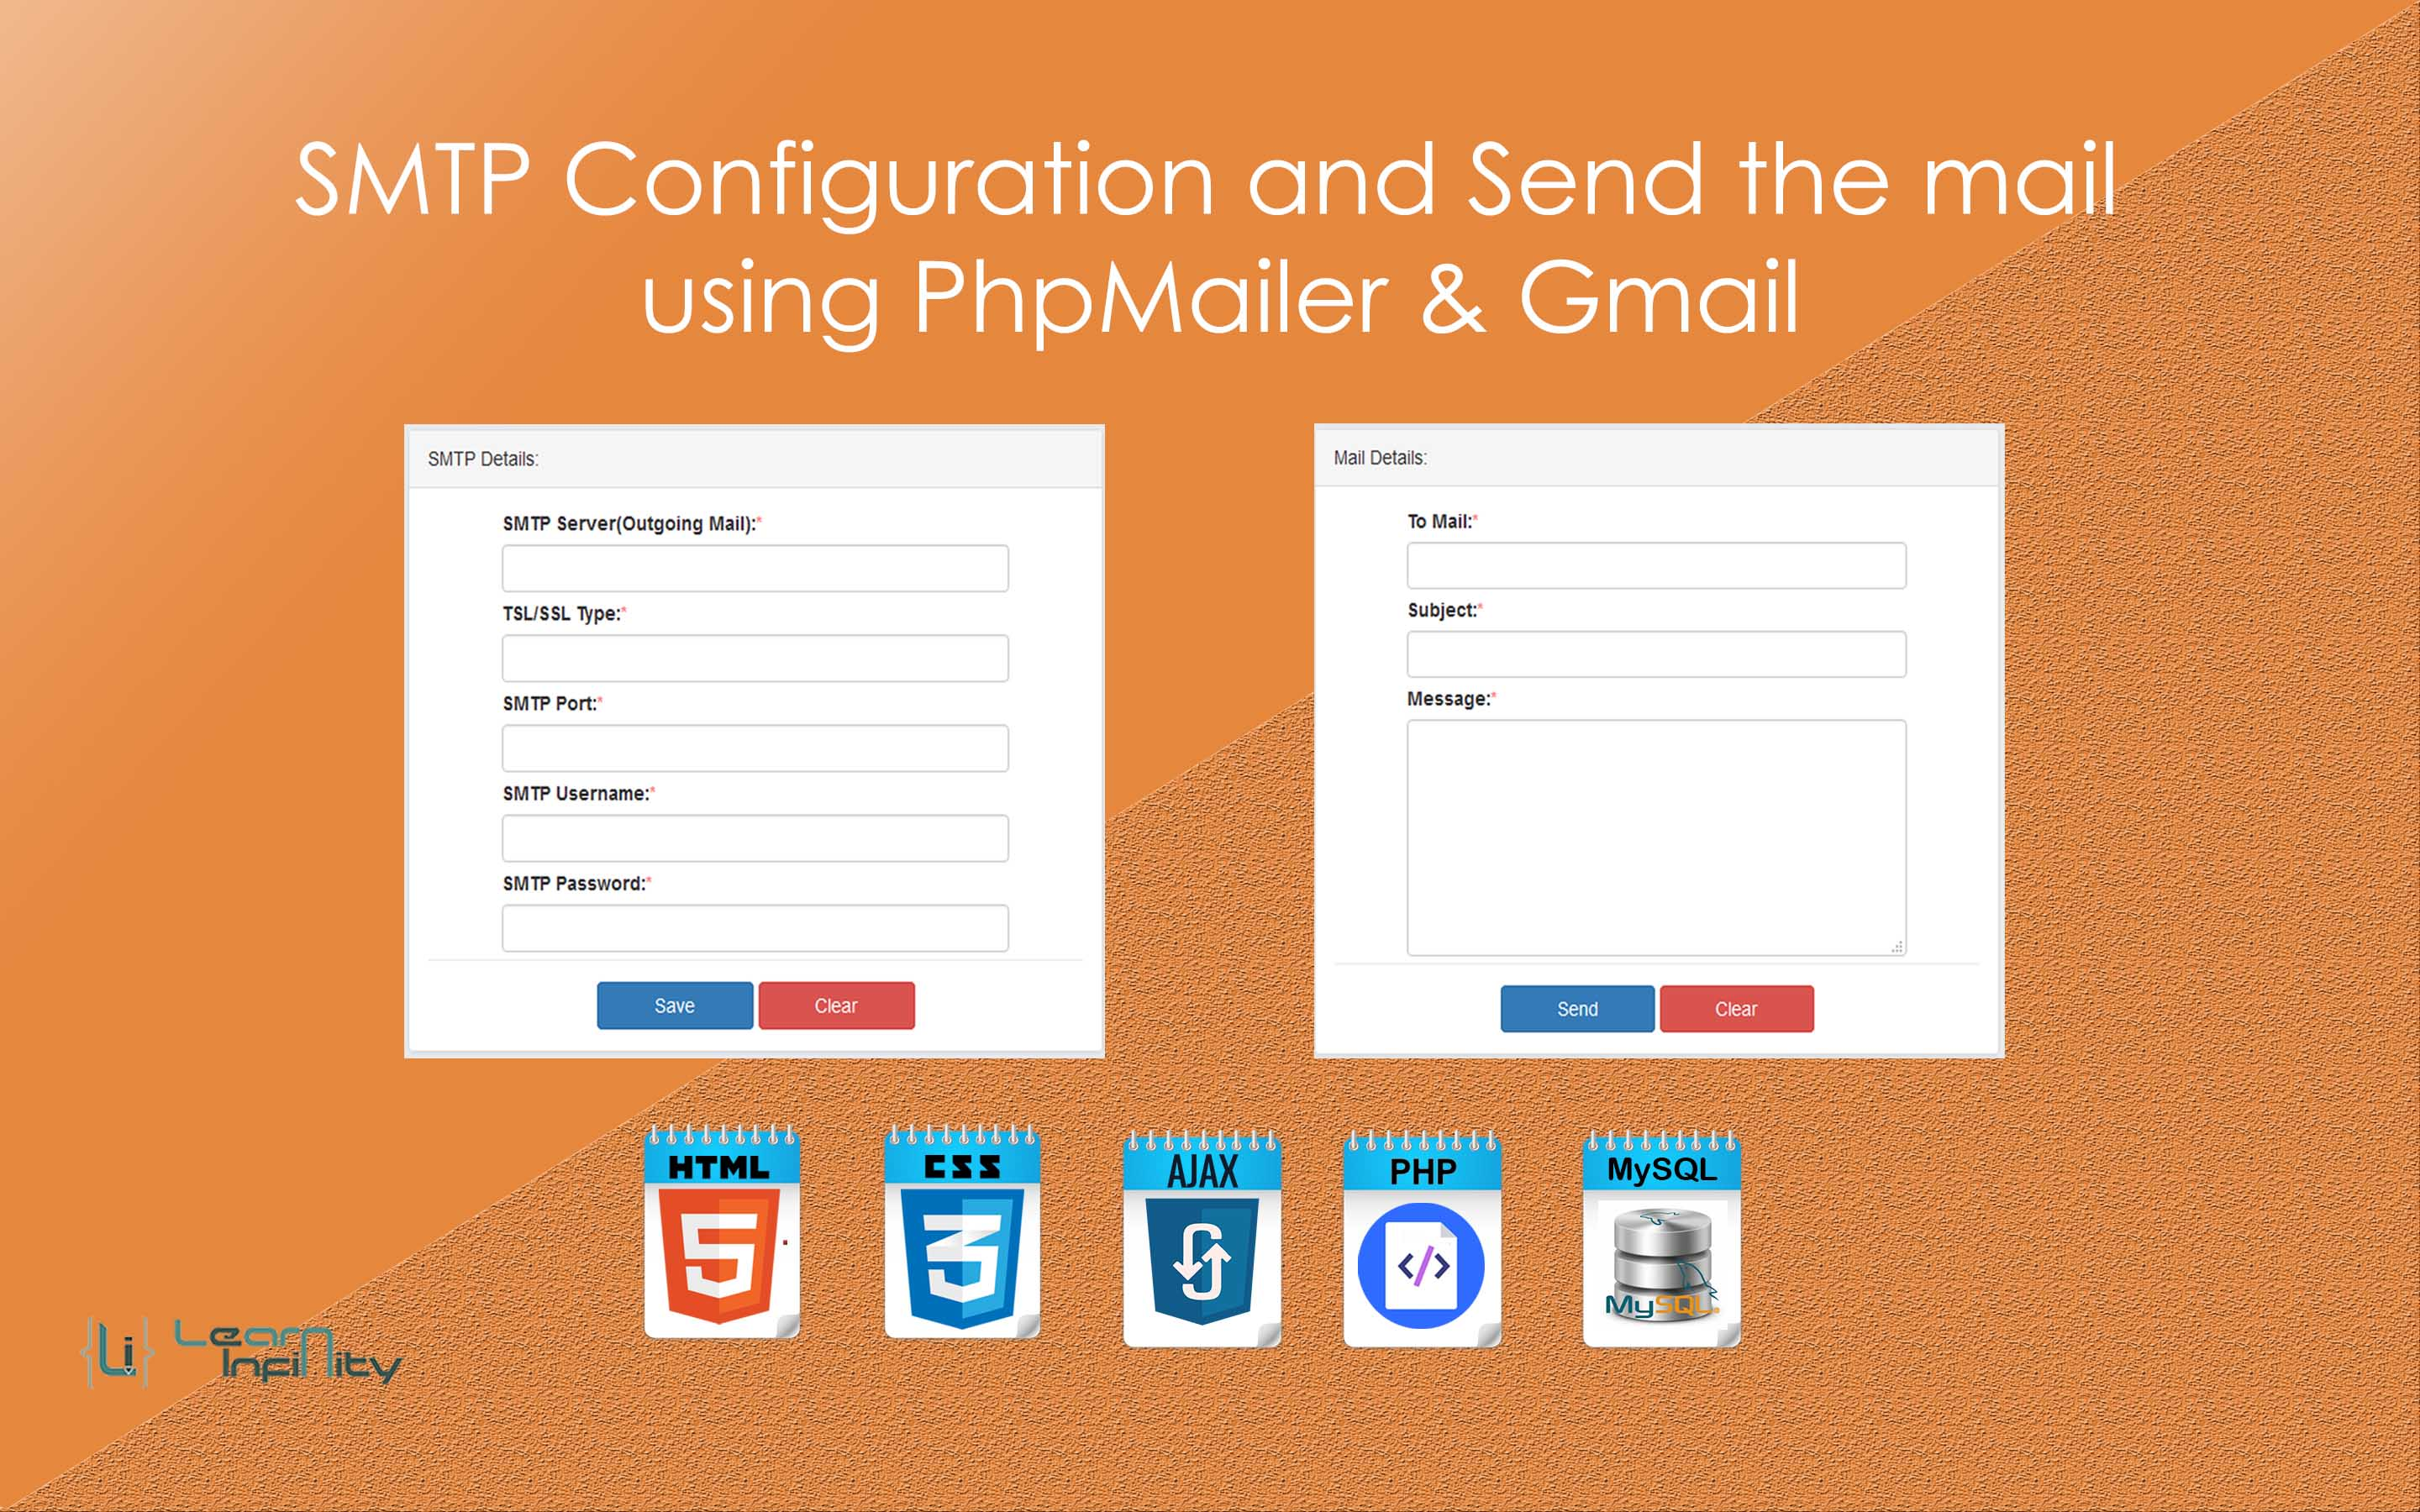 SMTP Configuration and Send the mail using PhpMailer & Gmail